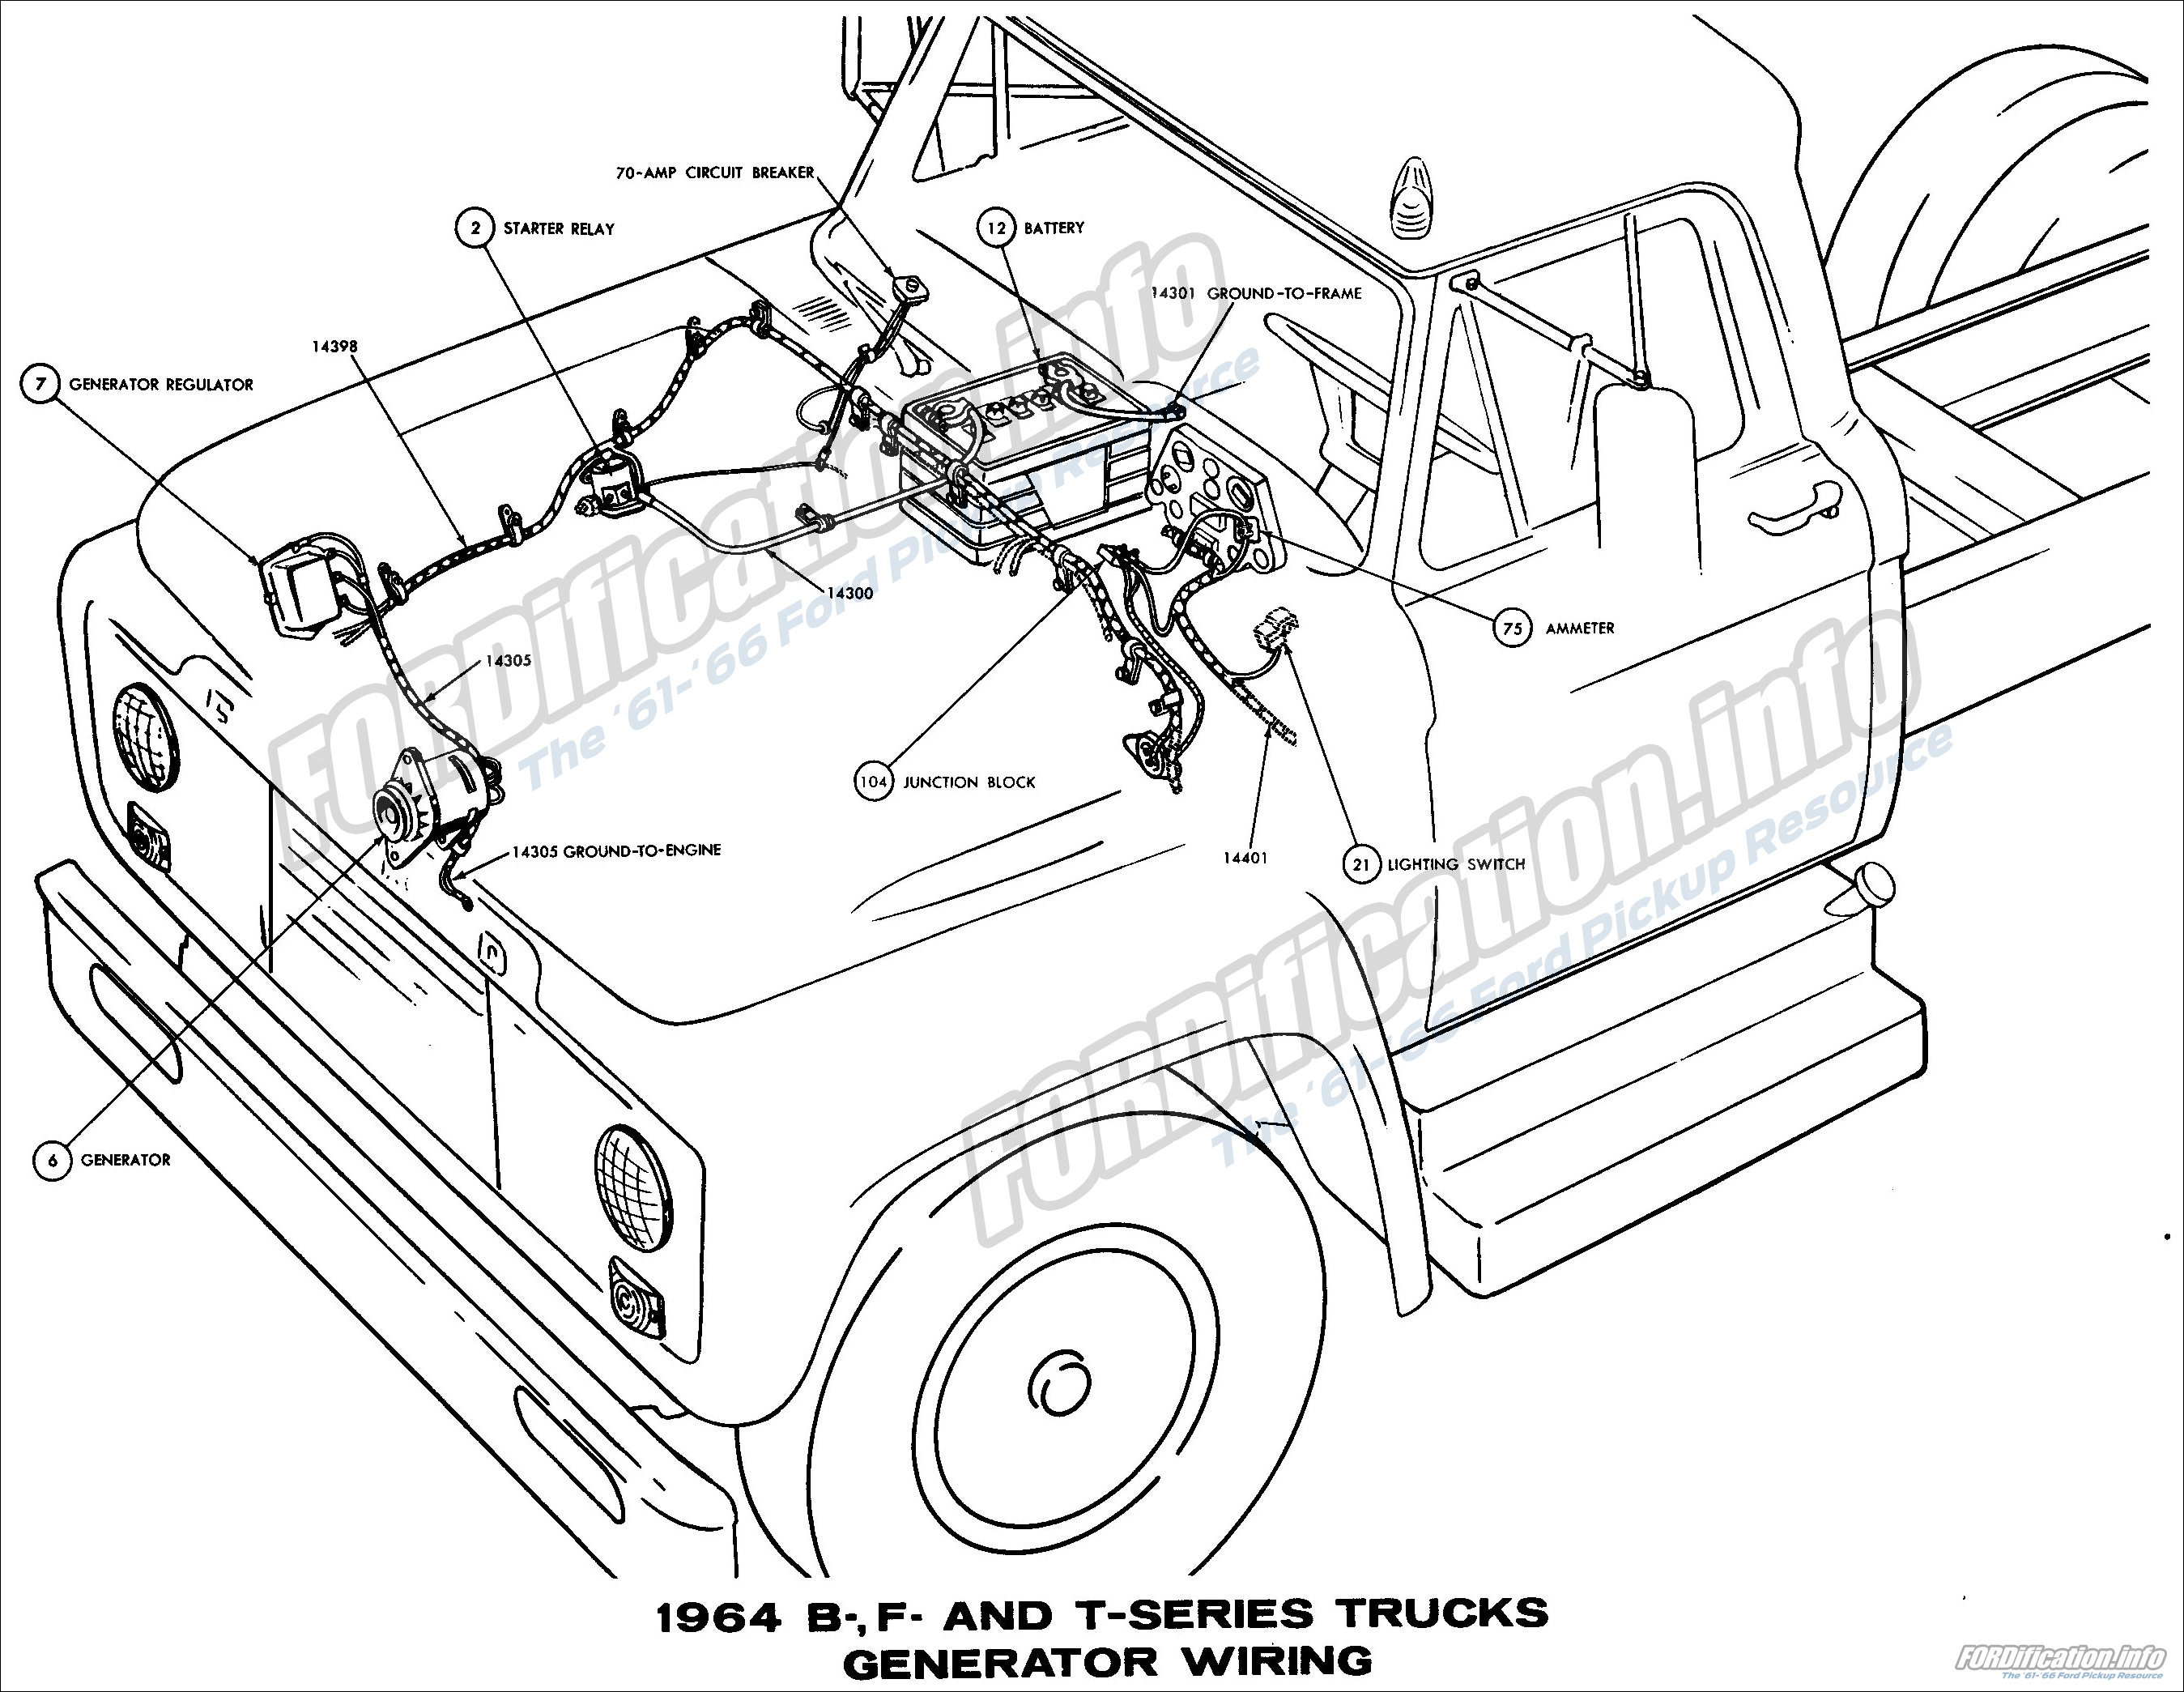 Ford Truck Generator Wiring Diagram List Of Schematic Circuit F150 1964 Diagrams Fordification Info The 61 66 Rh